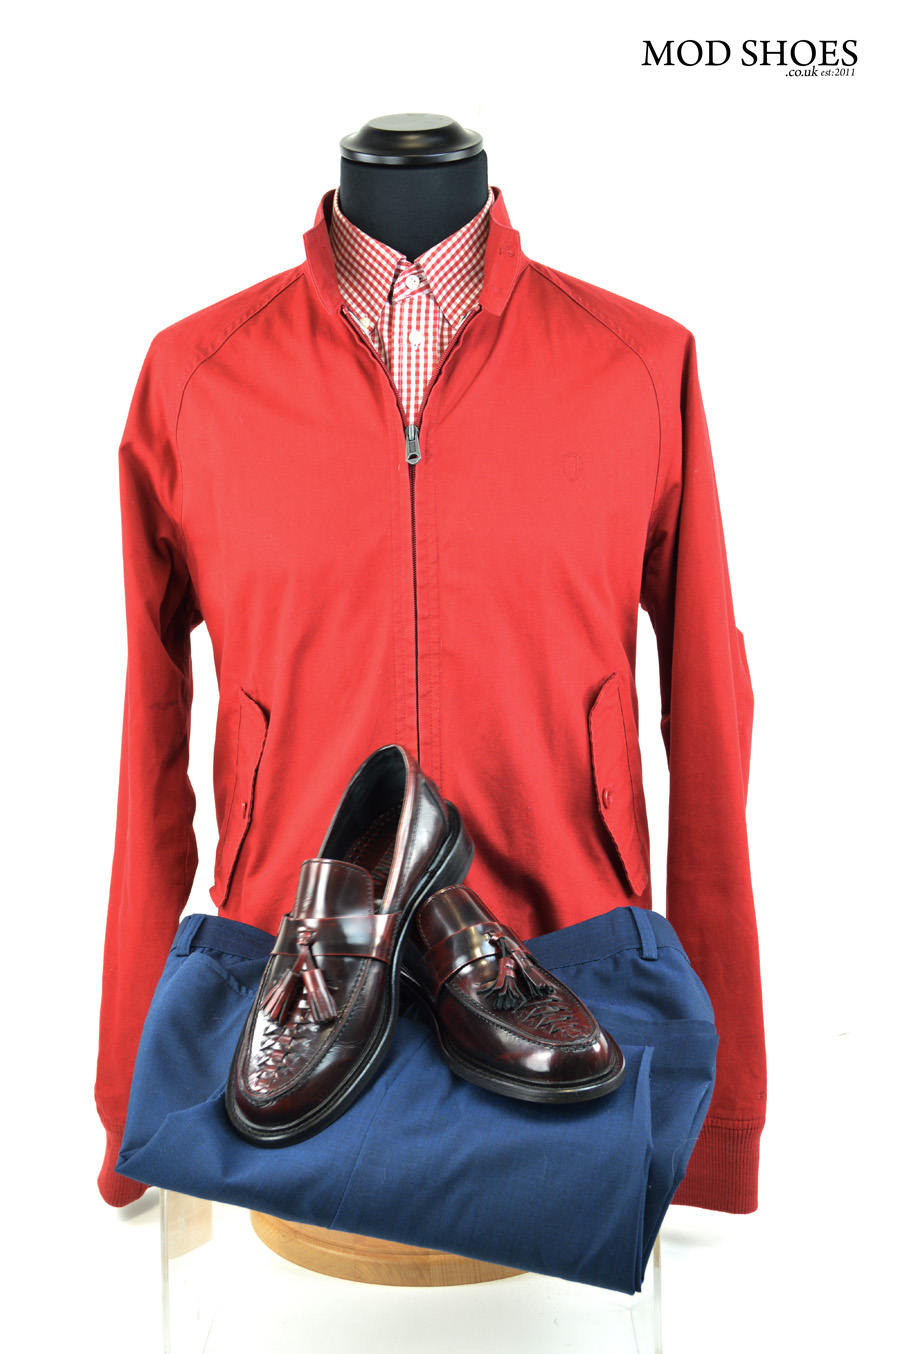 Modshoes mod ska tassel loafersm with red harrington